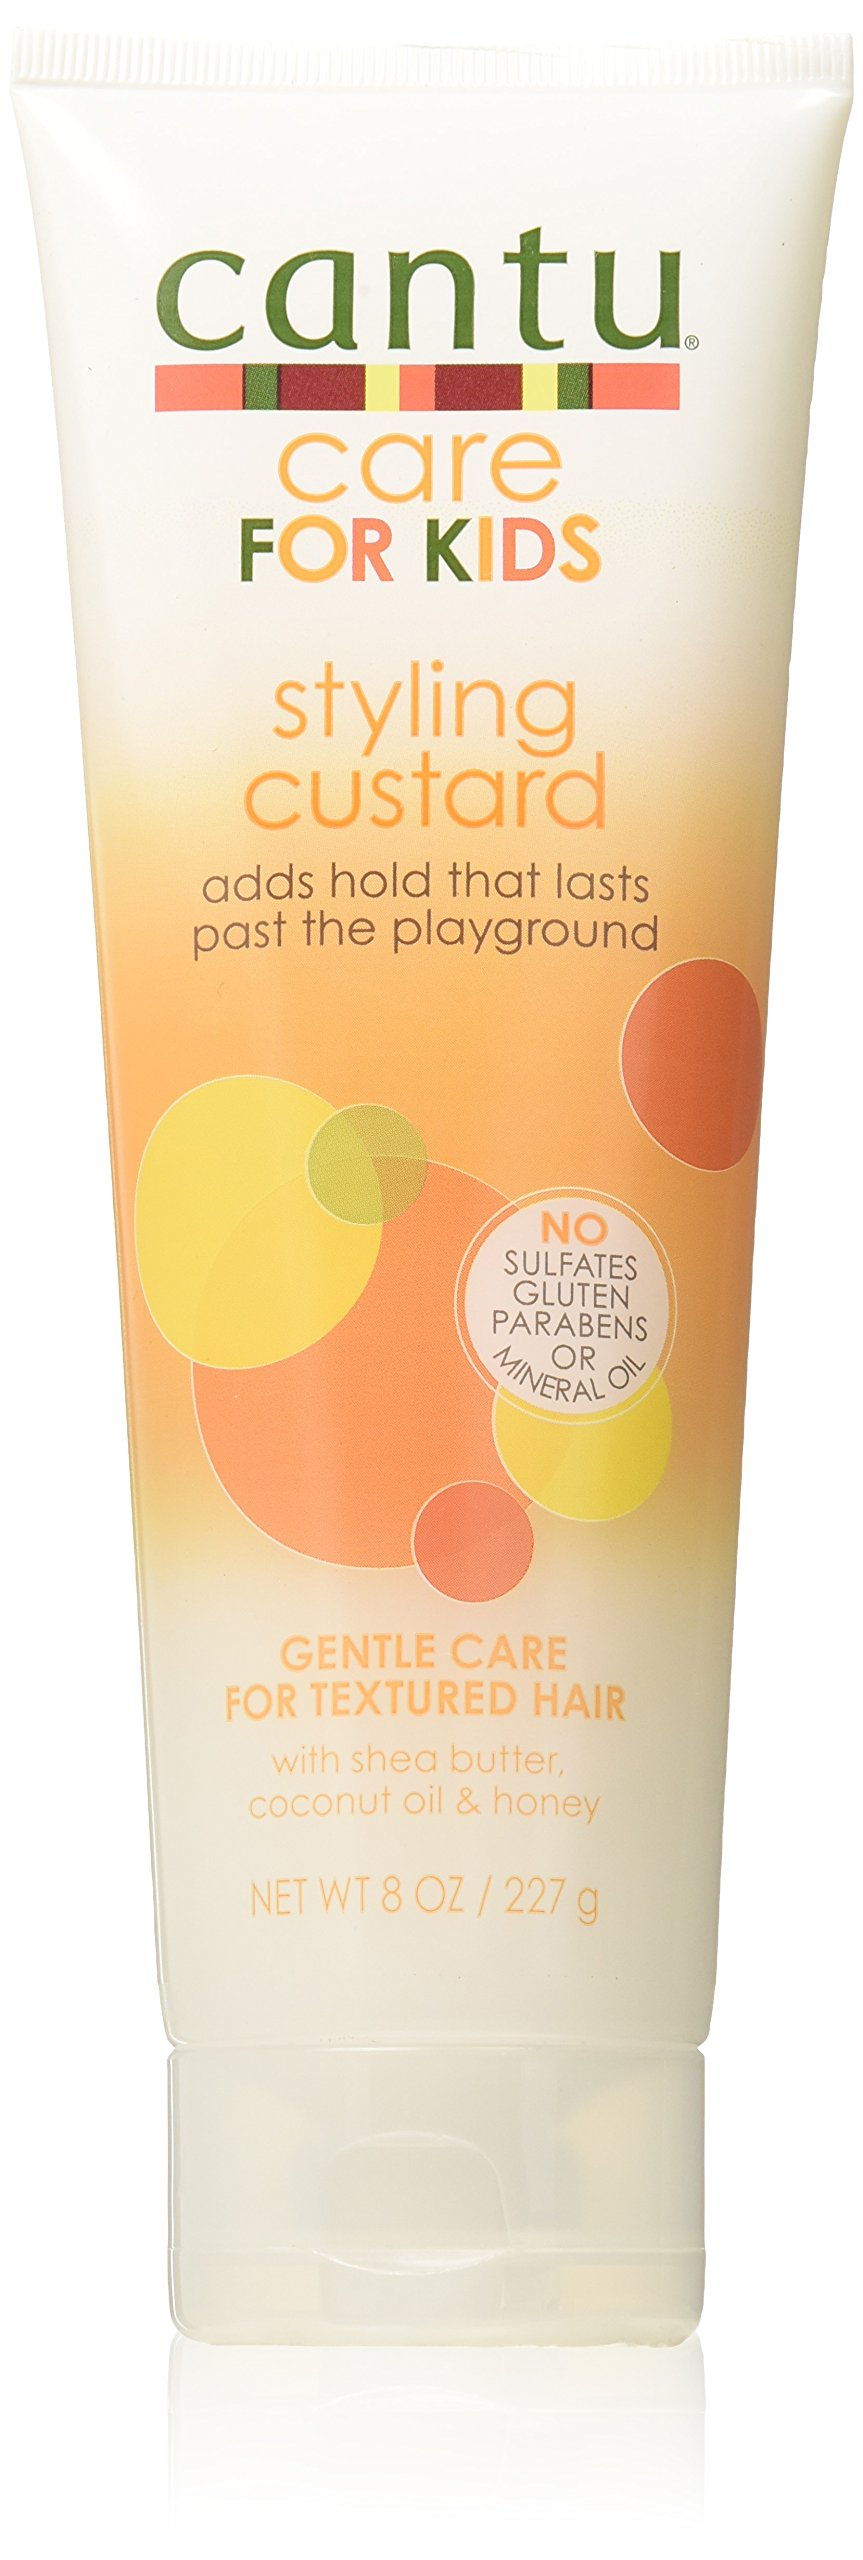 Cantu Care for Kids Styling Custard, 8 Ounce